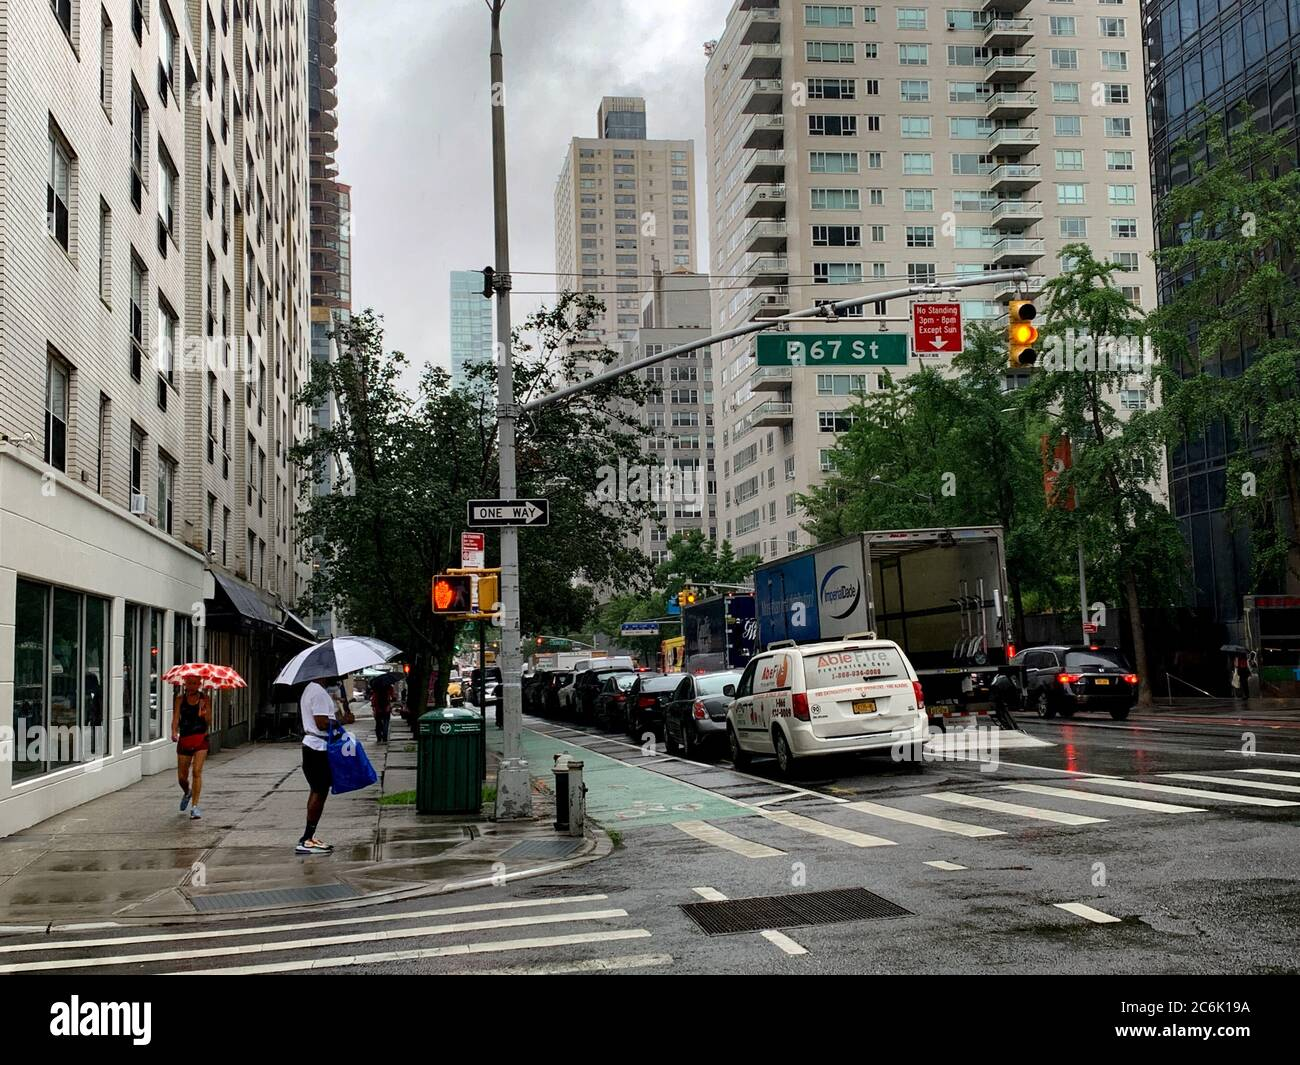 New York, USA. 10th July, 2020. (NEW) Heavy rainfall and floods expected in New York City . July 10, 2020, New York, USA: Tropical storm warnings and floods have been issued for New York City and some of the surrounding suburbs this Friday (10) according to the National Weather service. It is expected to be windy too up to between 40 mph and 50 mph.Credit: Niyi Fote /Thenews2. Credit: Niyi Fote/TheNEWS2/ZUMA Wire/Alamy Live News Stock Photo